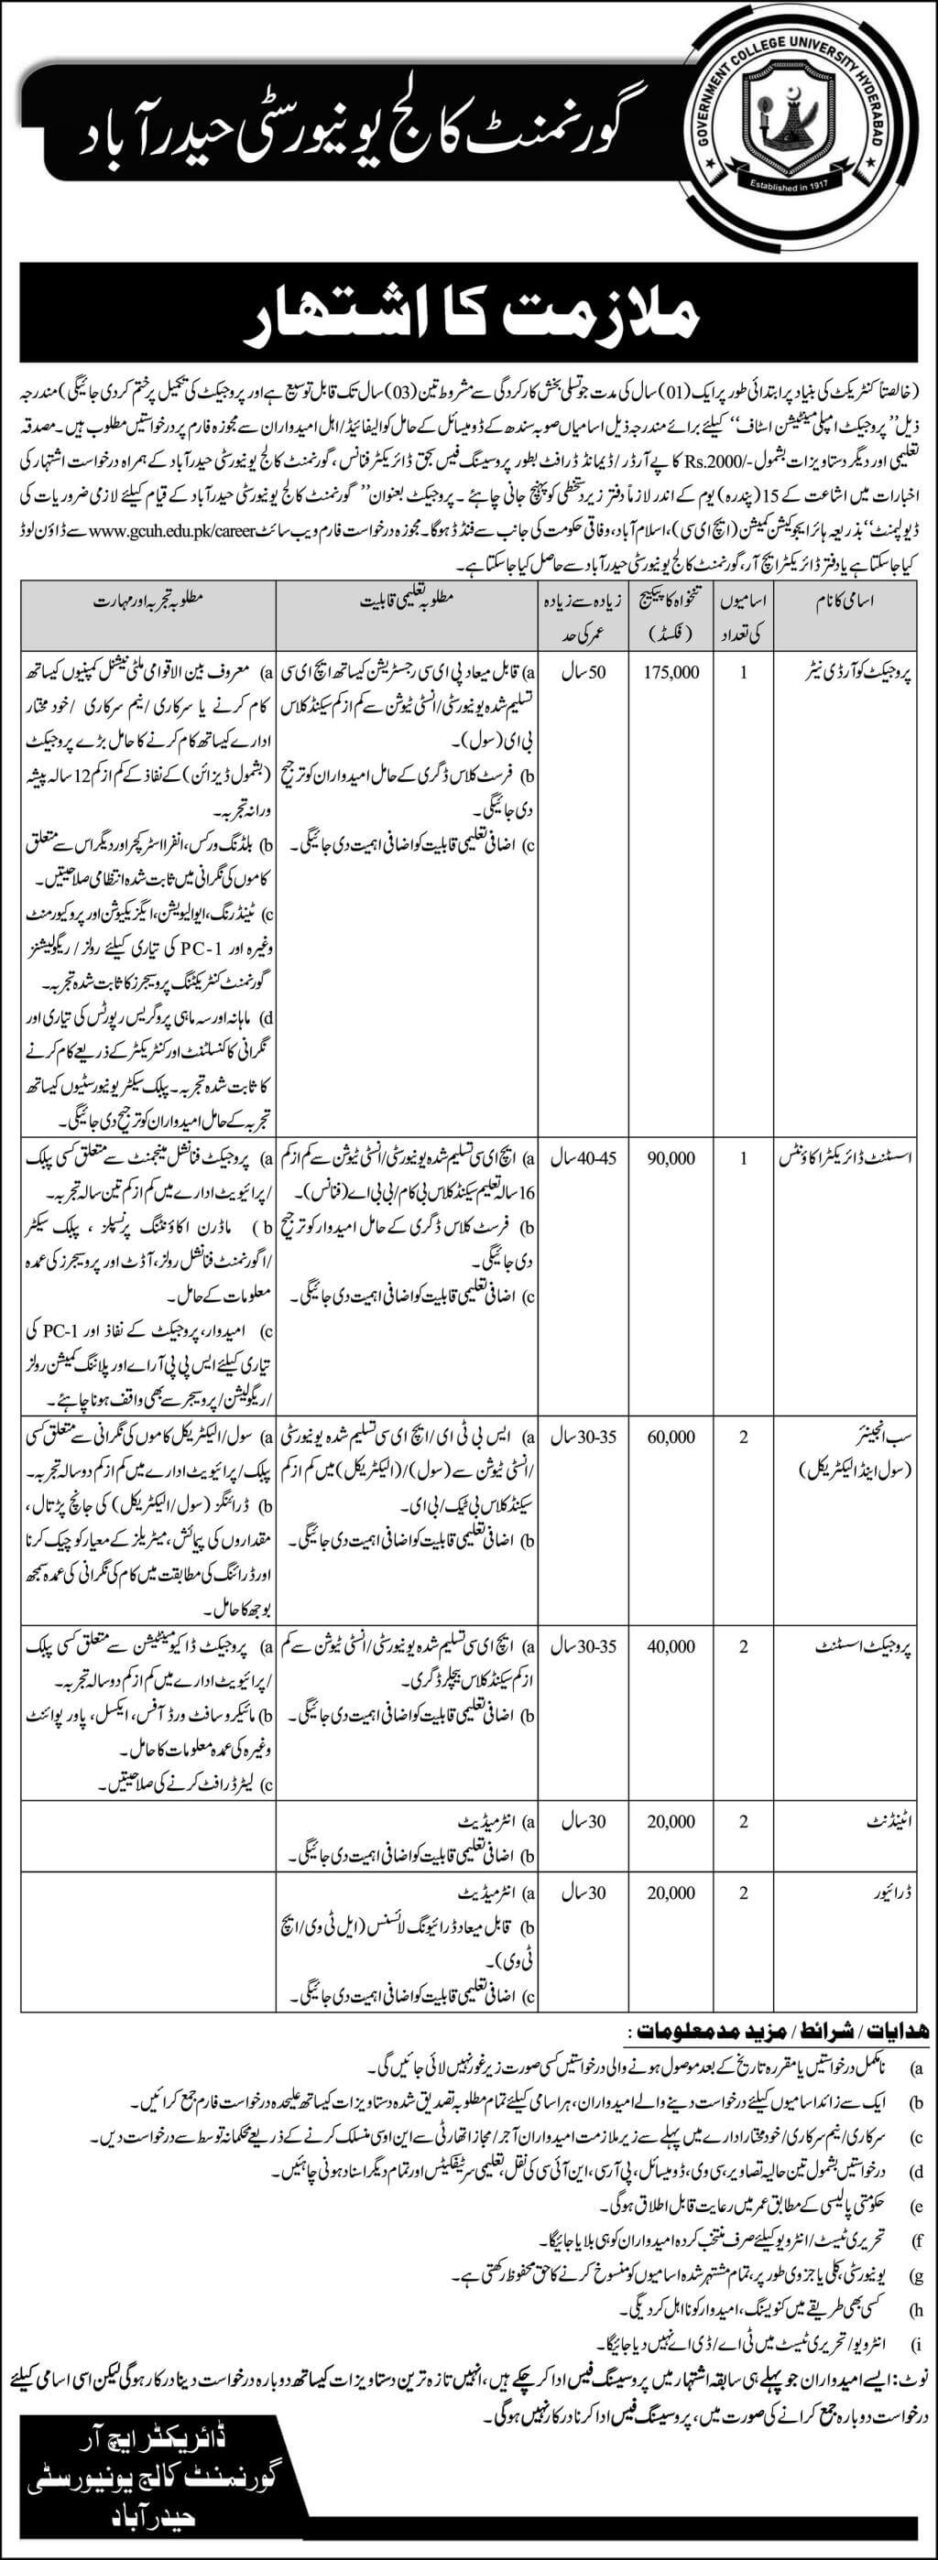 Government jobs in Hyderabad 2021 At College University Hyderabad